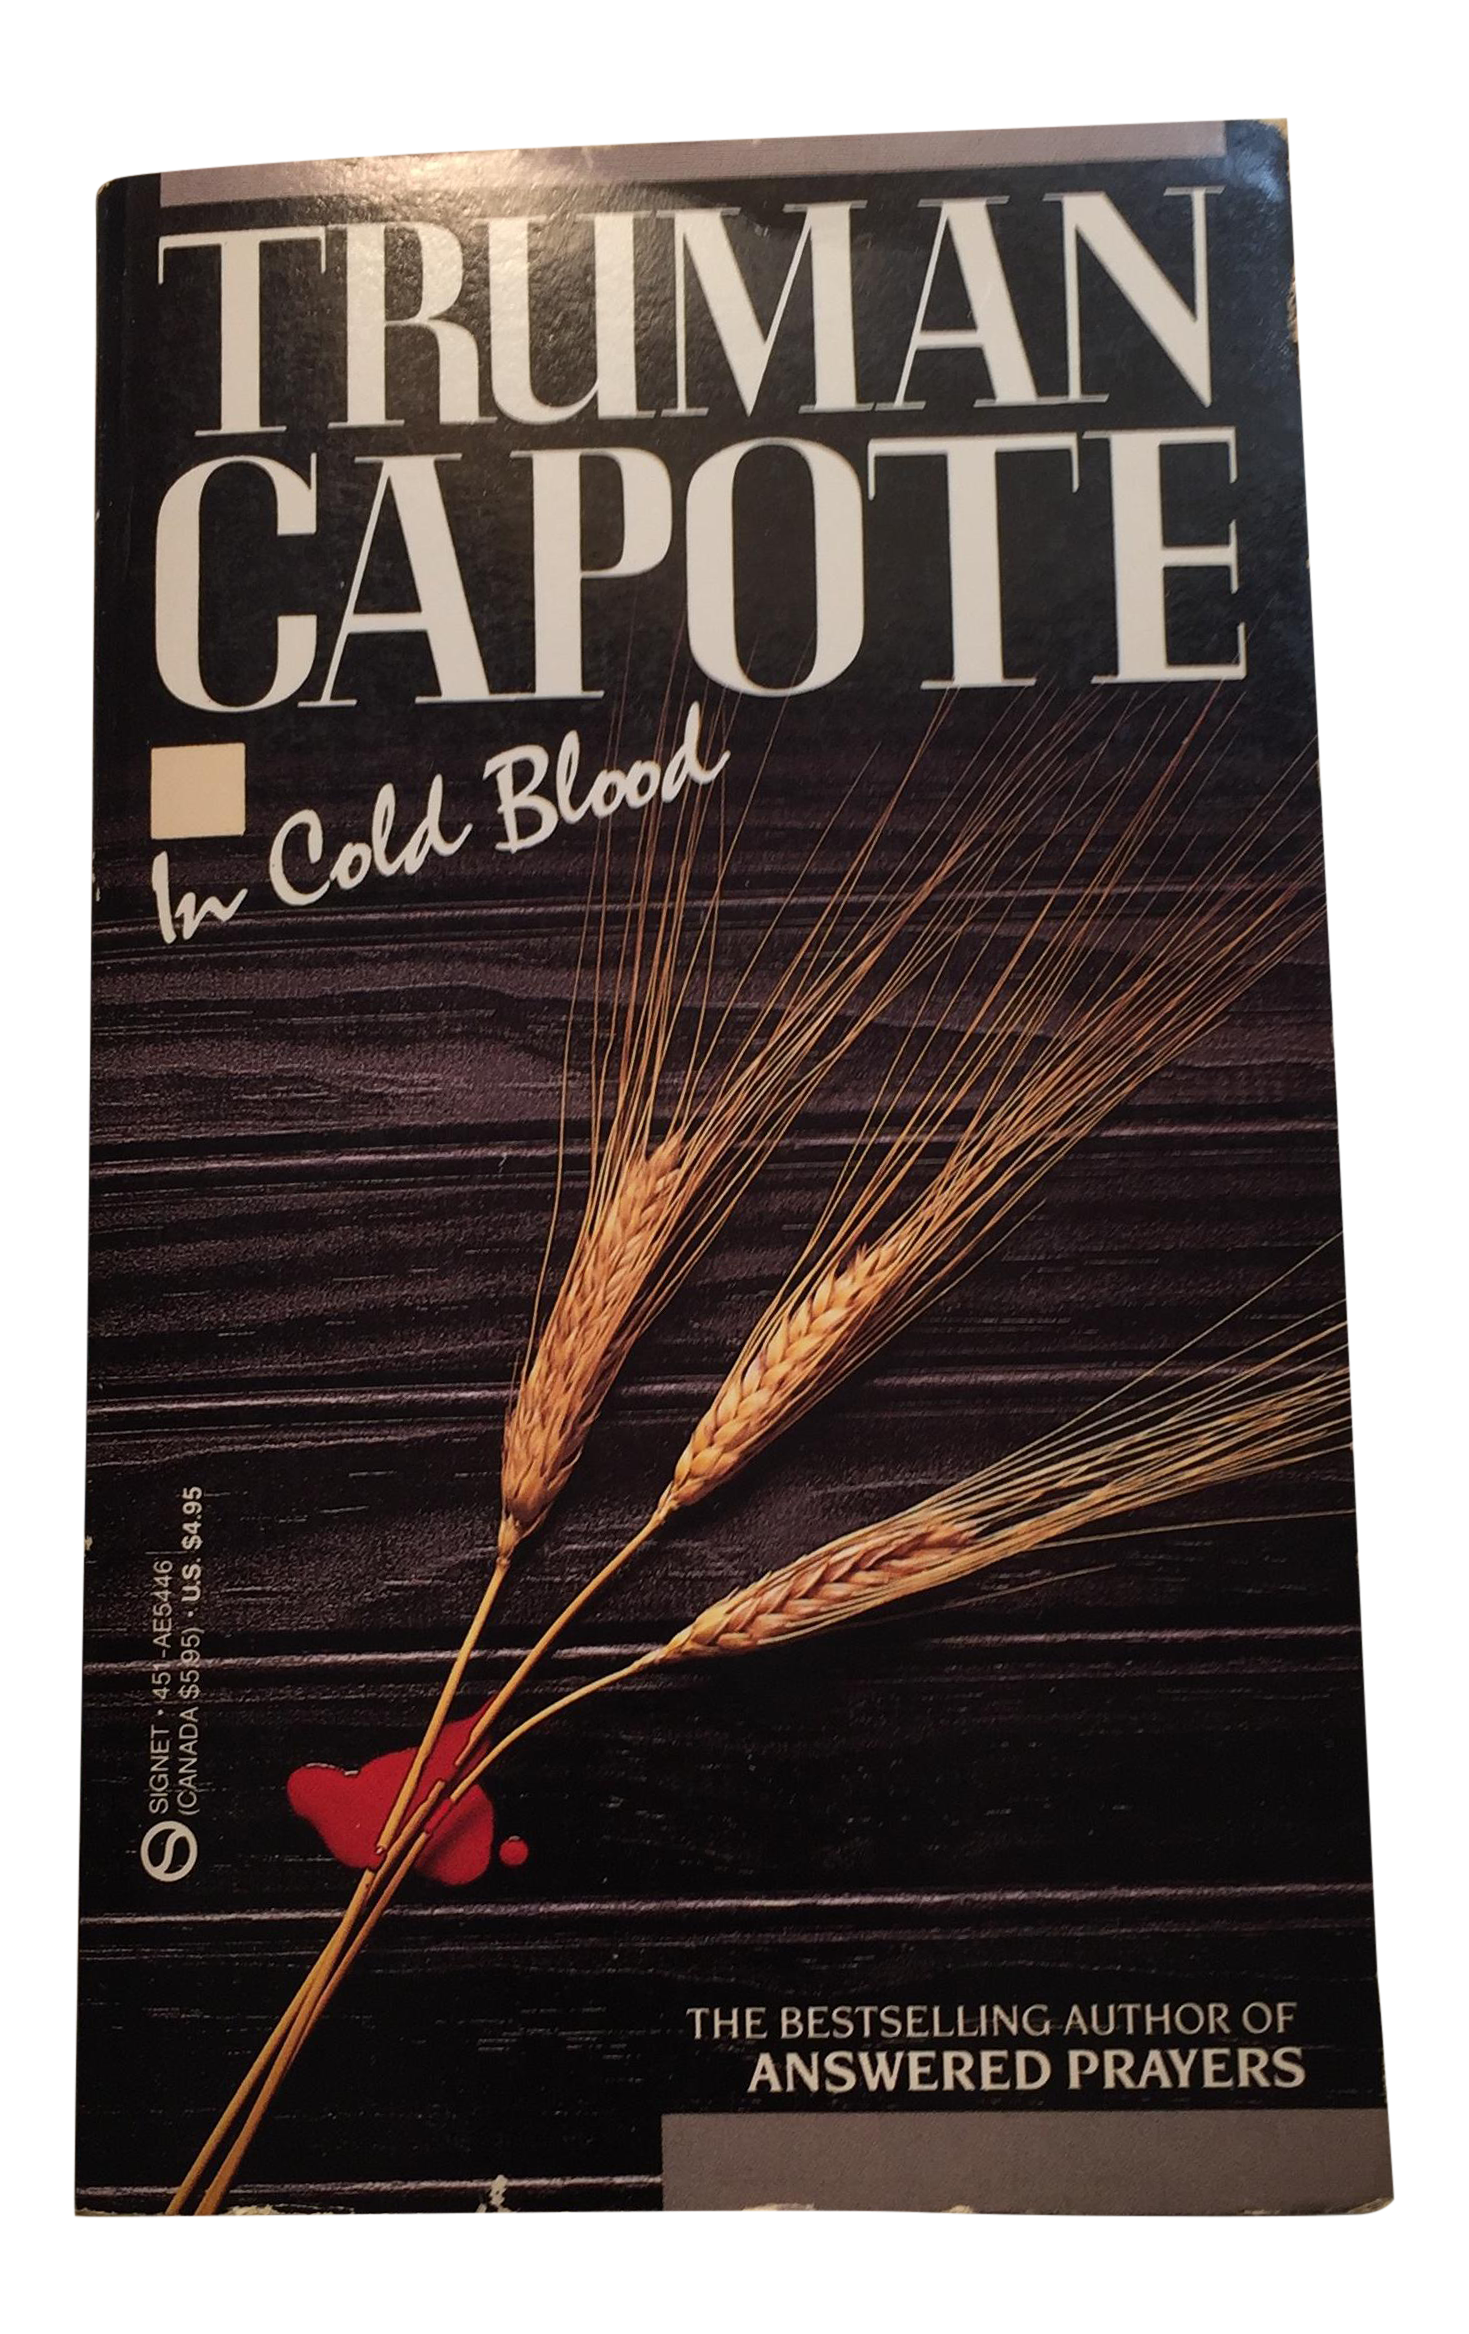 in cold blood truman capote thesis In cold blood analysis essay: tips, tricks, and ideas in cold blood is a famous  novel by truman capote about two criminals who murder a wealthy farmer.